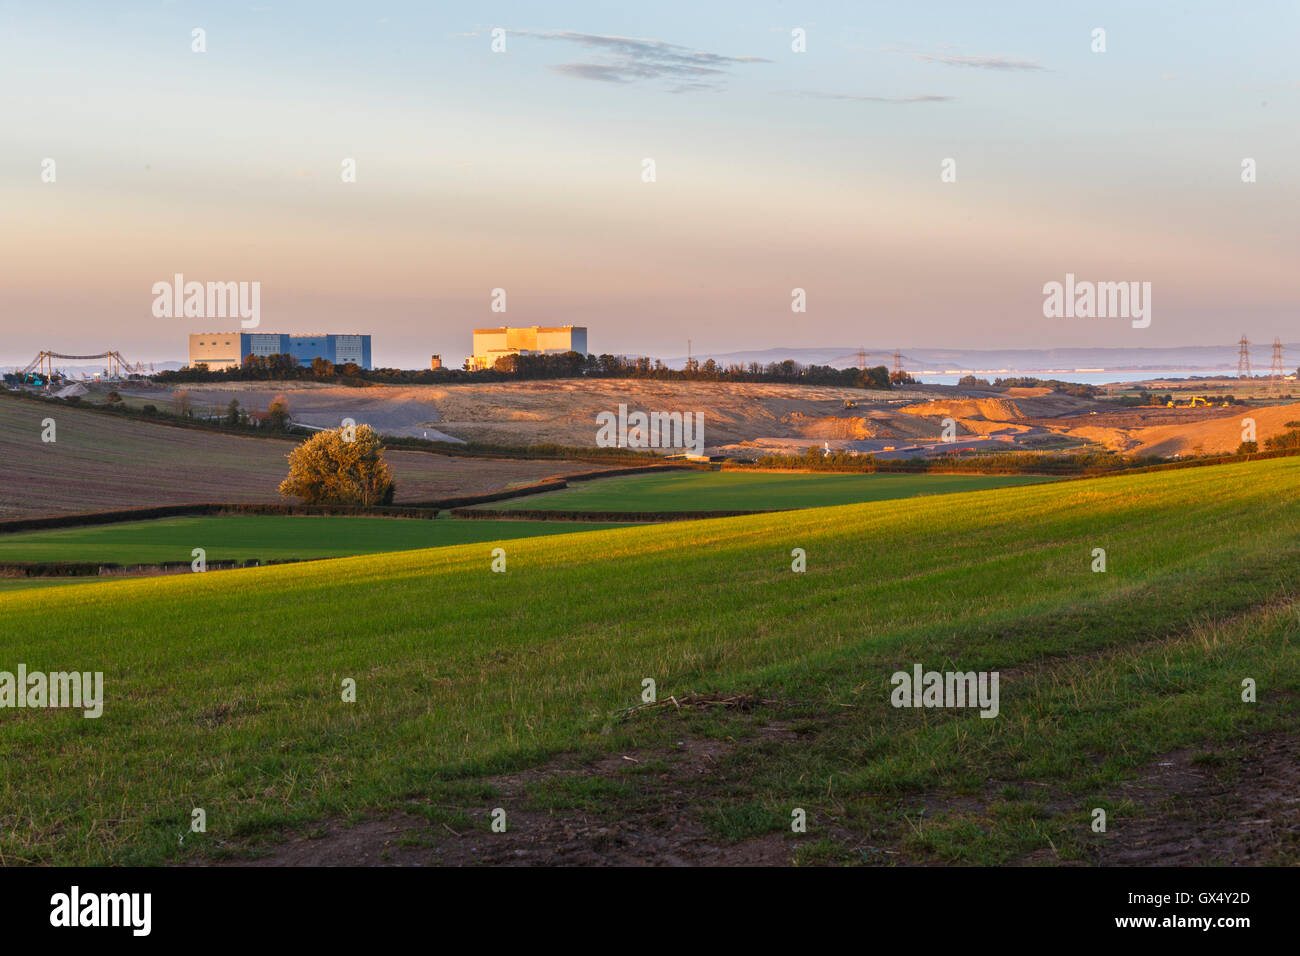 Hinkley point A station to left, B station to right. Groundworks for Hinkley point C in front of existing stations. - Stock Image